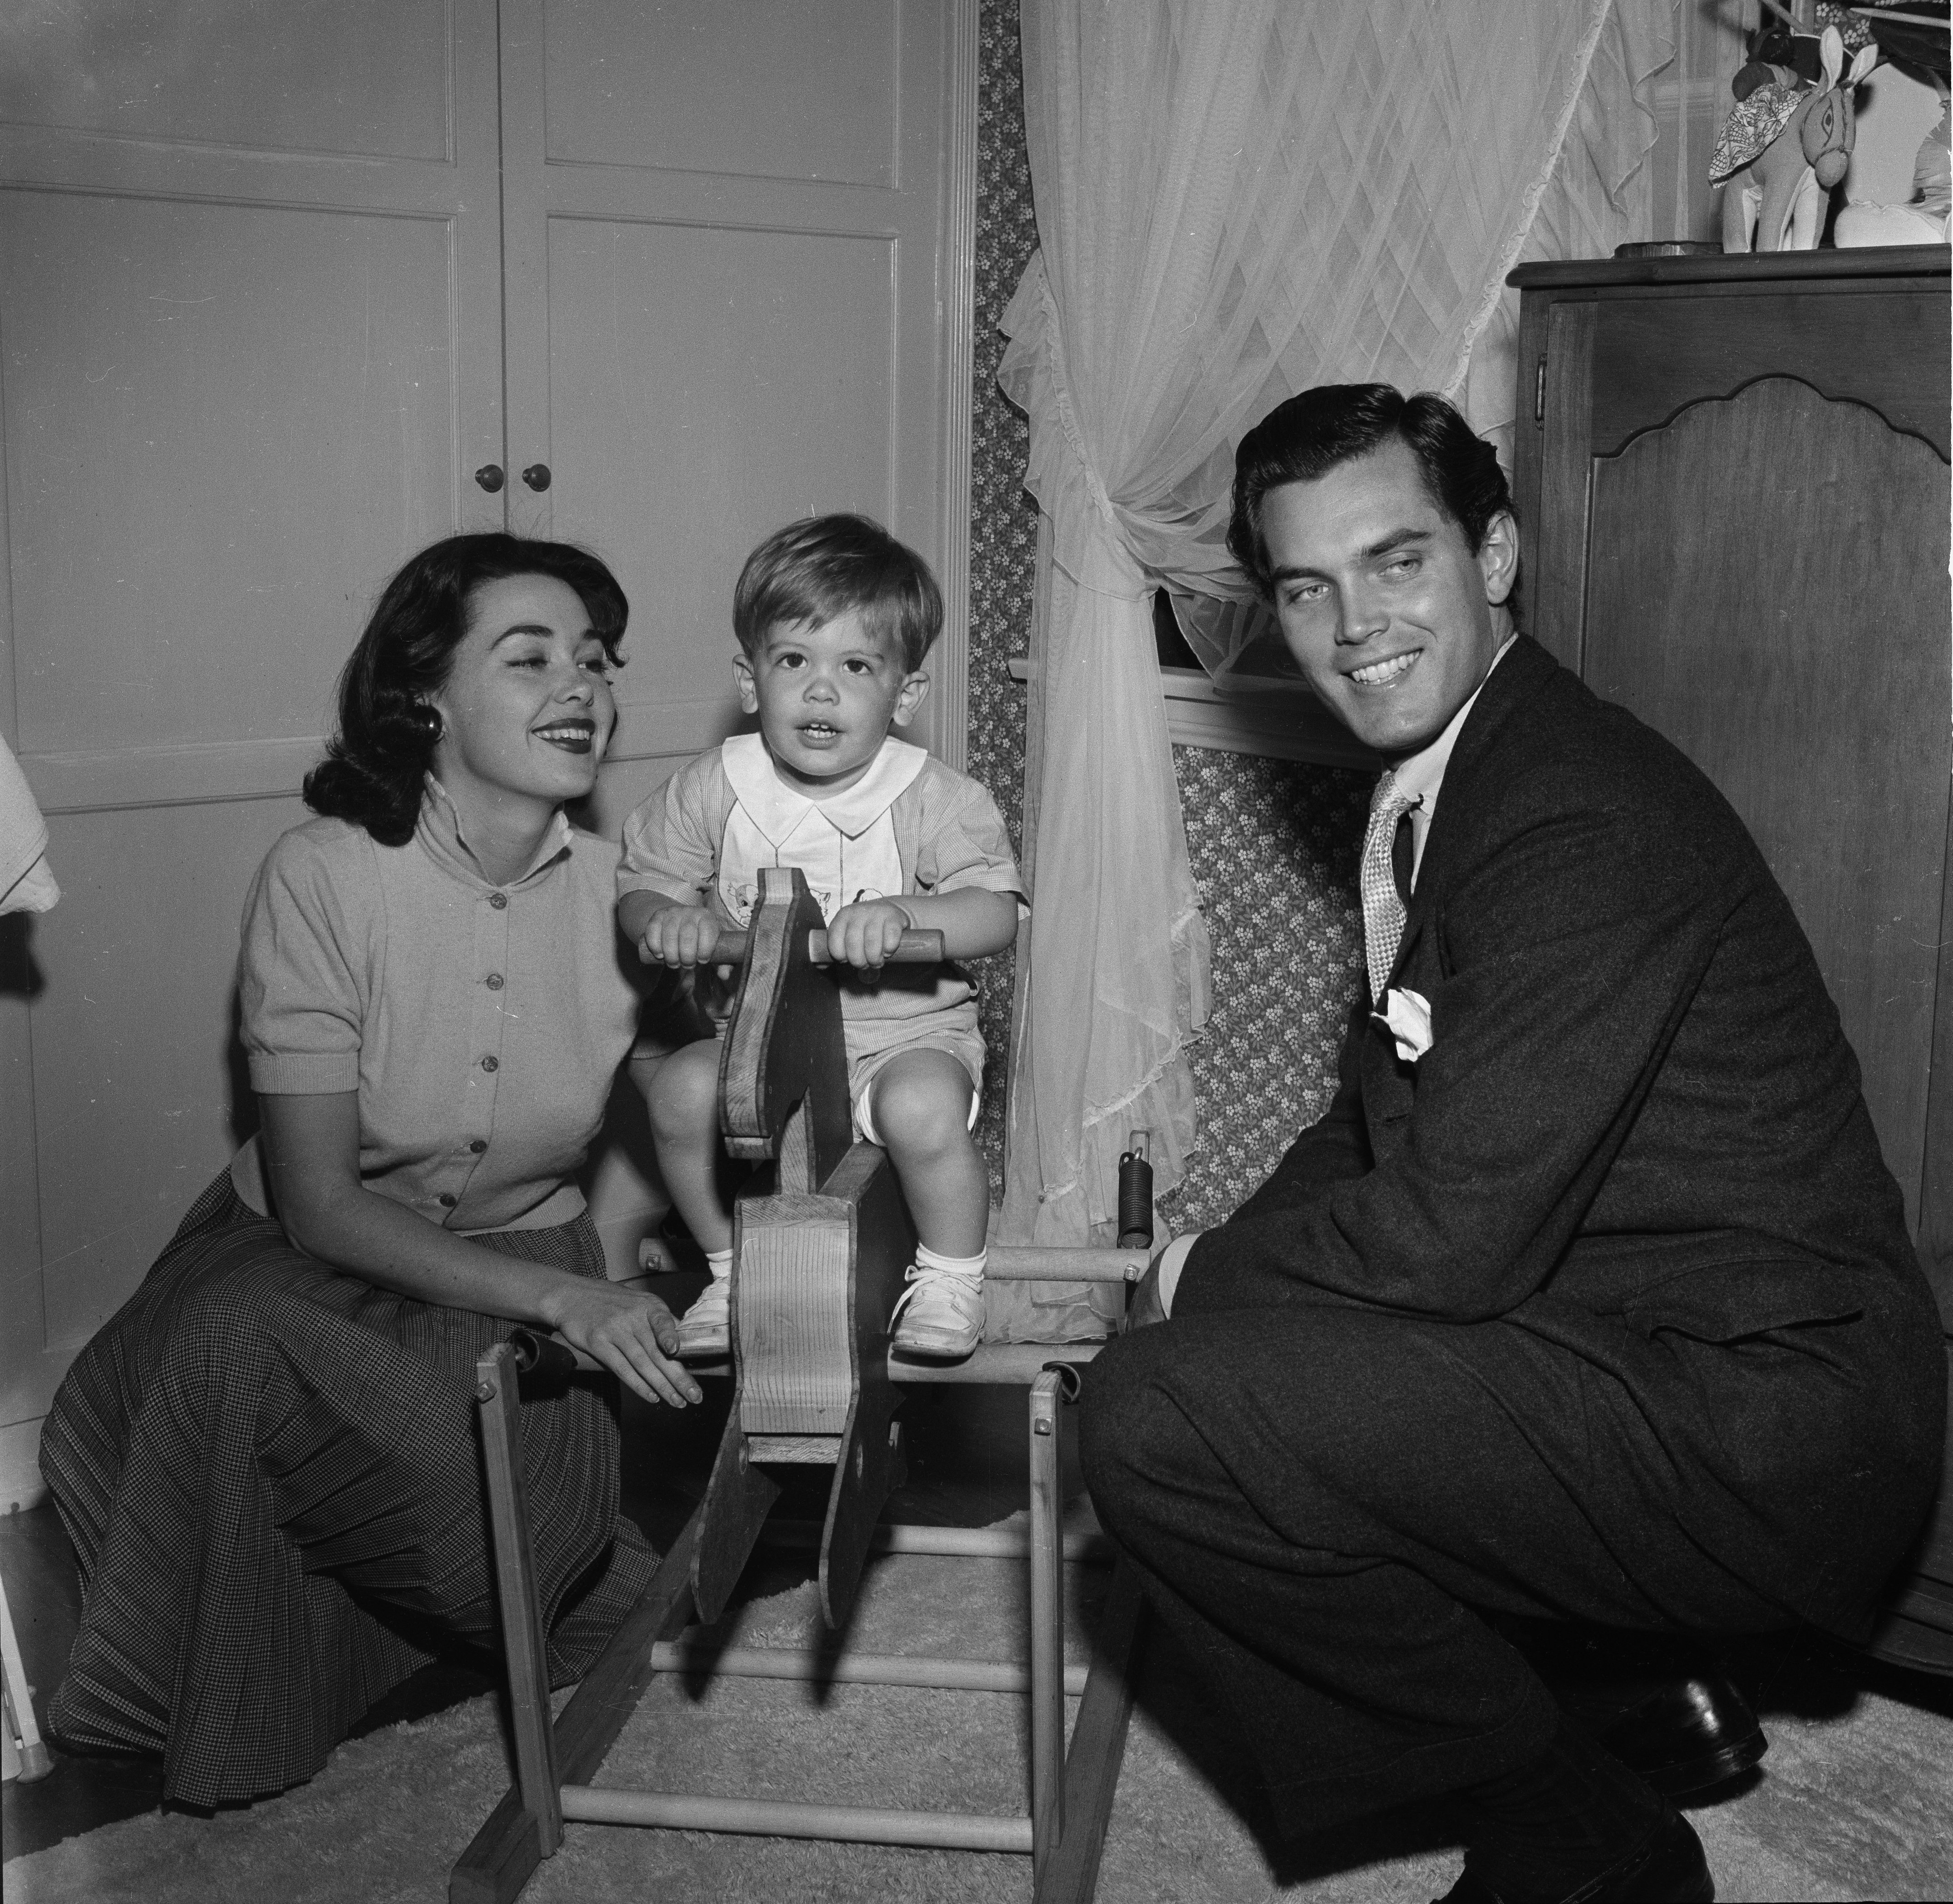 Barbara Rush, Jeffrey Hunter, and their son Christopher Hunter pose at home in Los Angeles, California, circa 1954 | Photo: Getty Images/Earl Leaf/Michael Ochs Archives